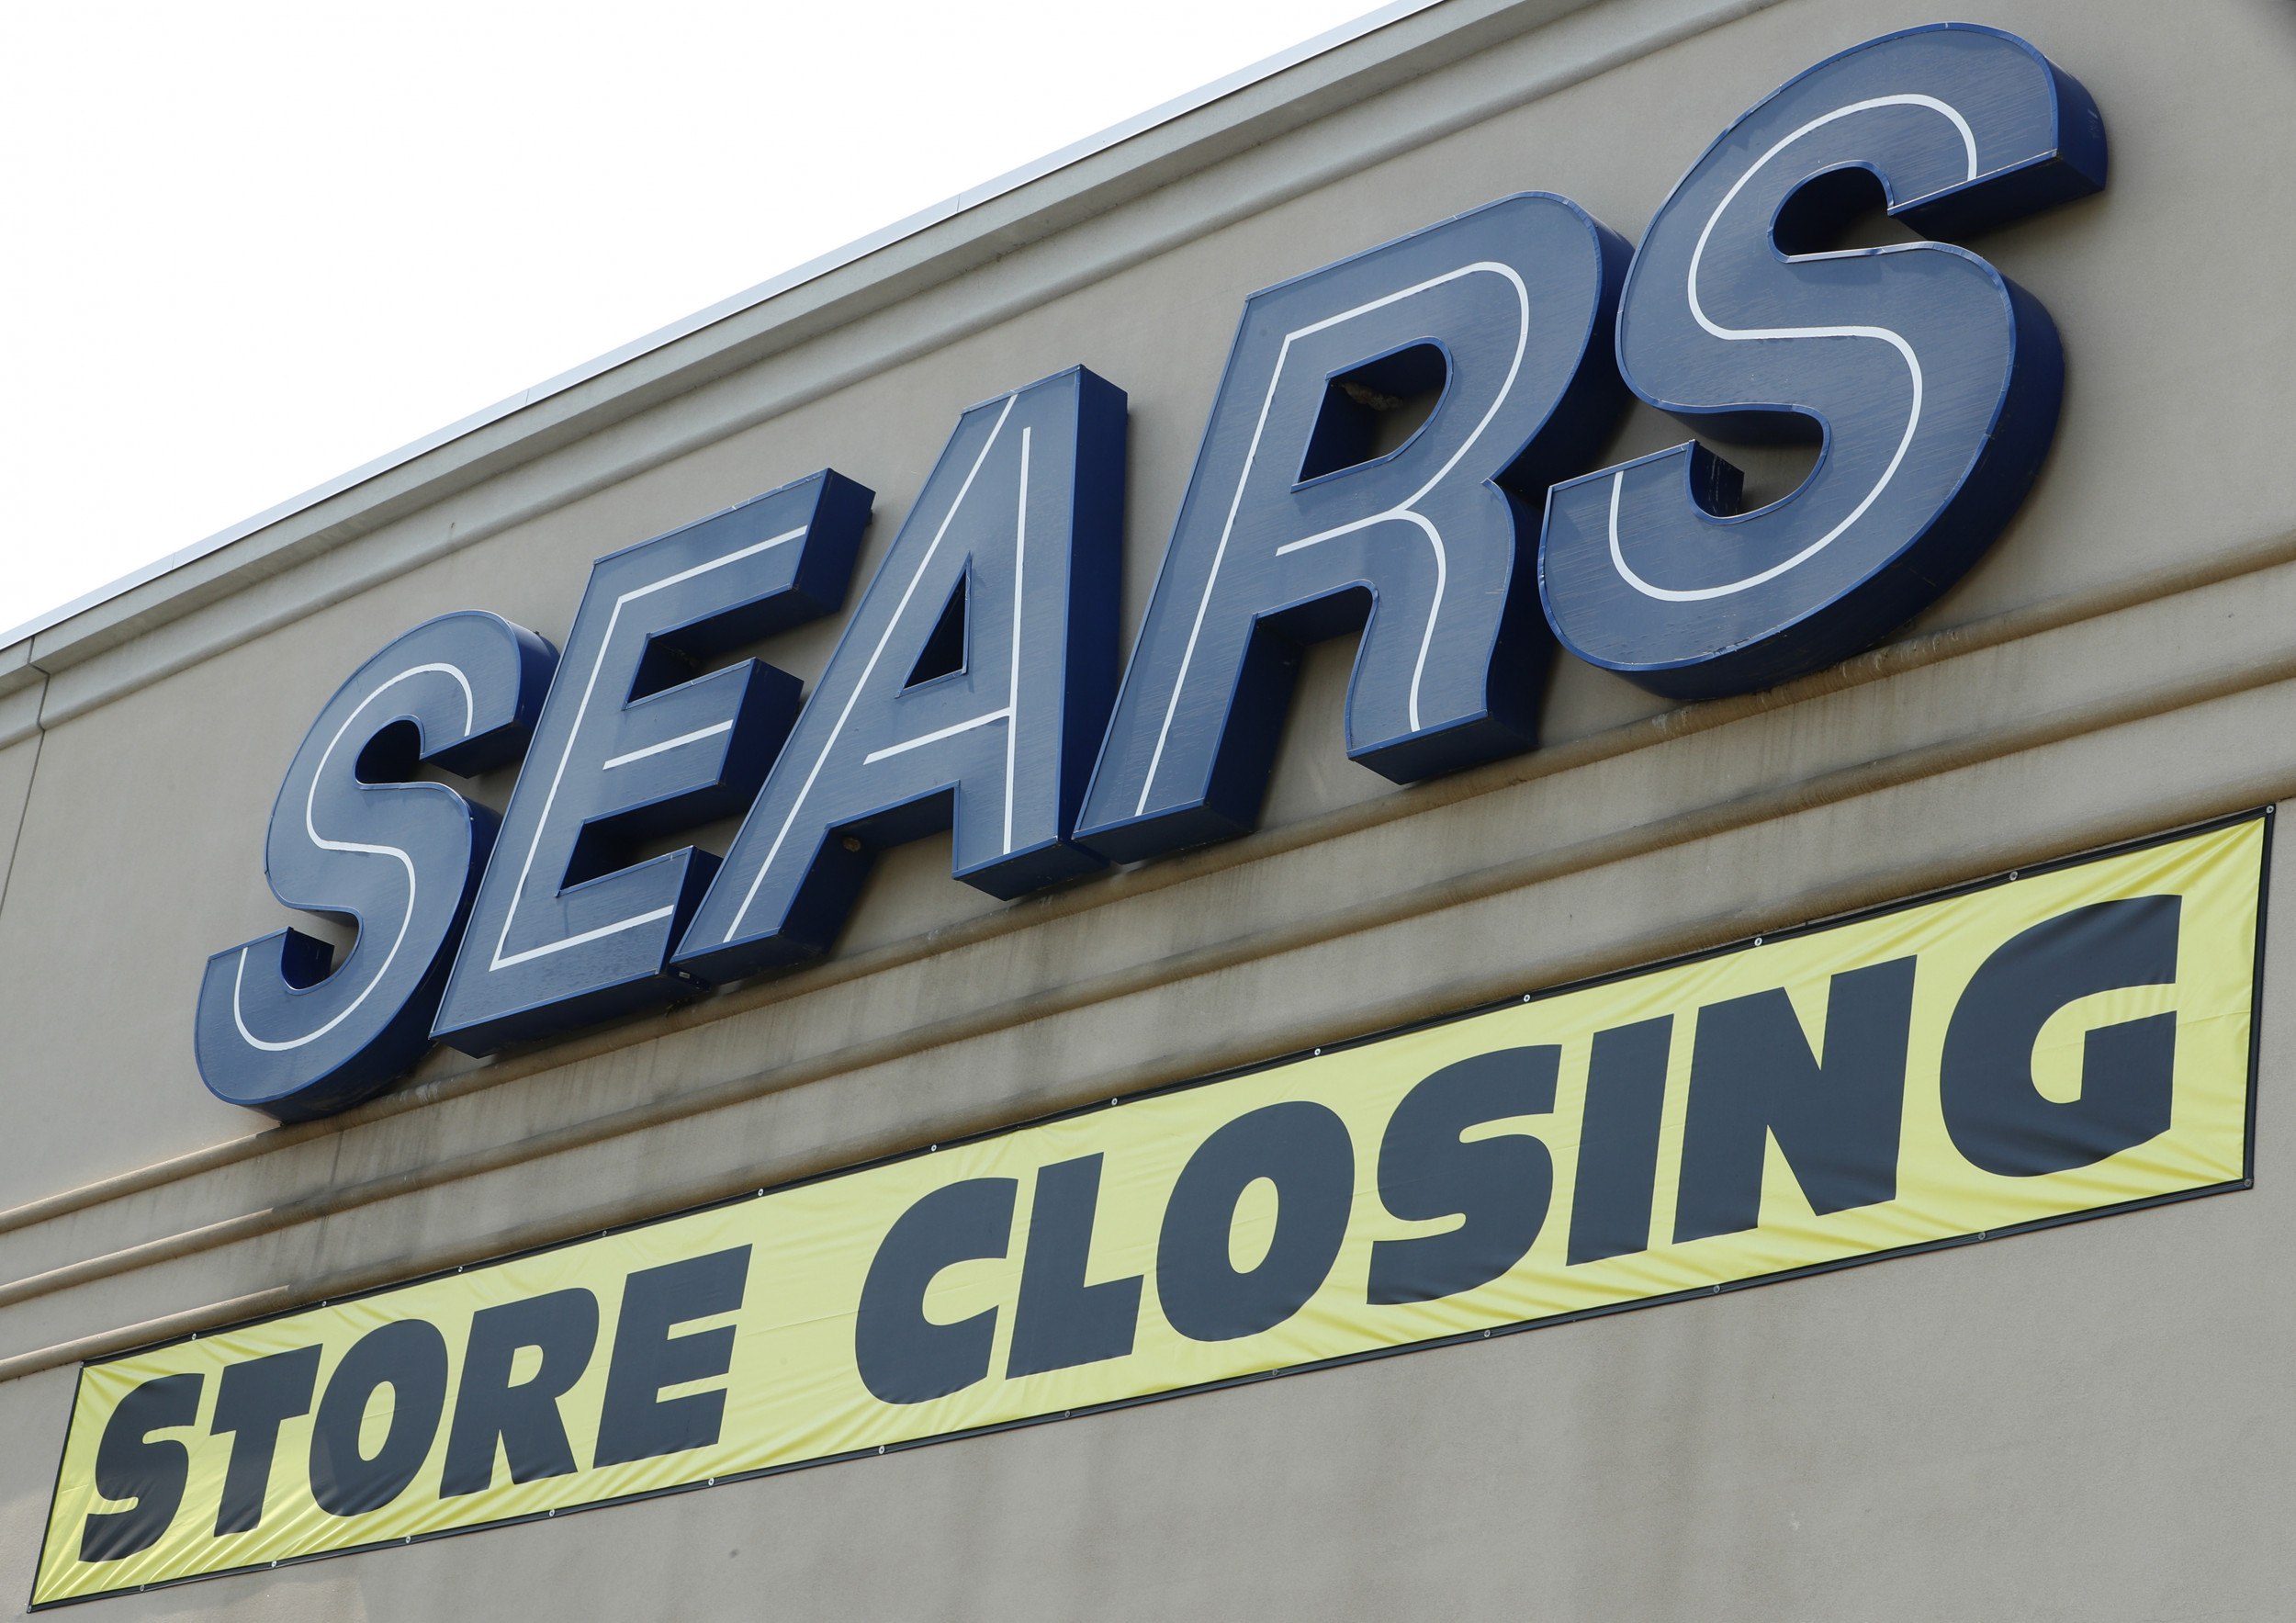 Sears Closing List 2020.Kmart And Sears Closures When Will They Close How Many